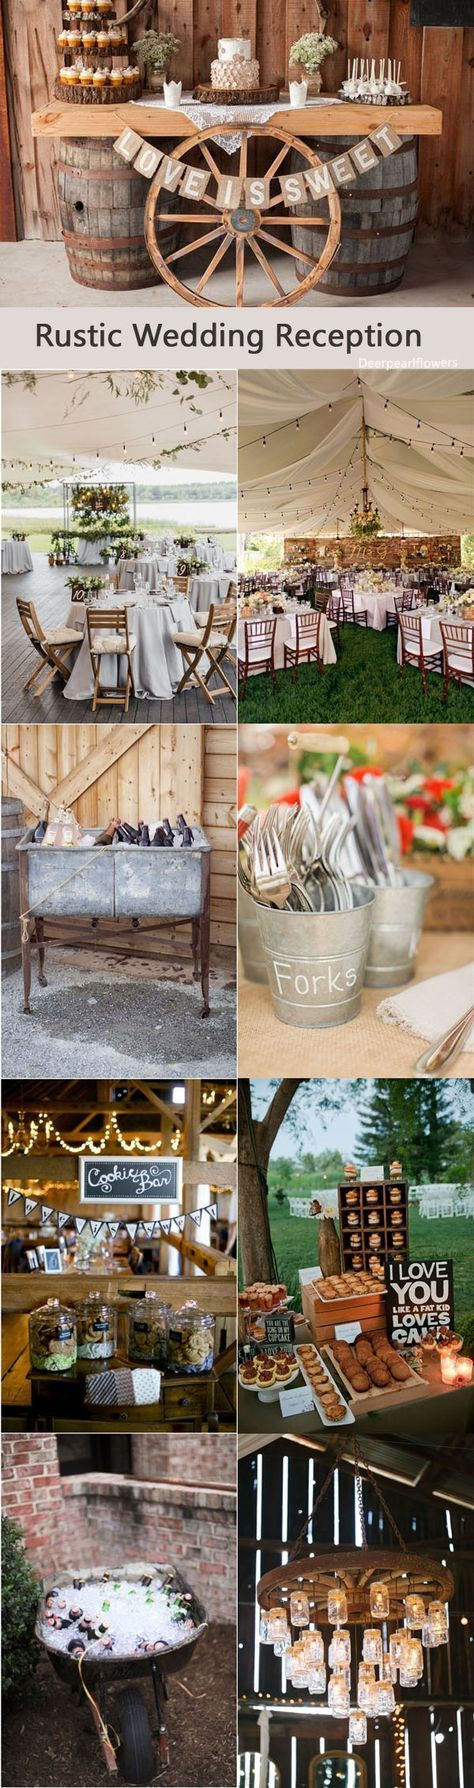 Diy rustic wedding decor ideas   Easy Rustic Wedding Ideas That You Could Try in   Rustic